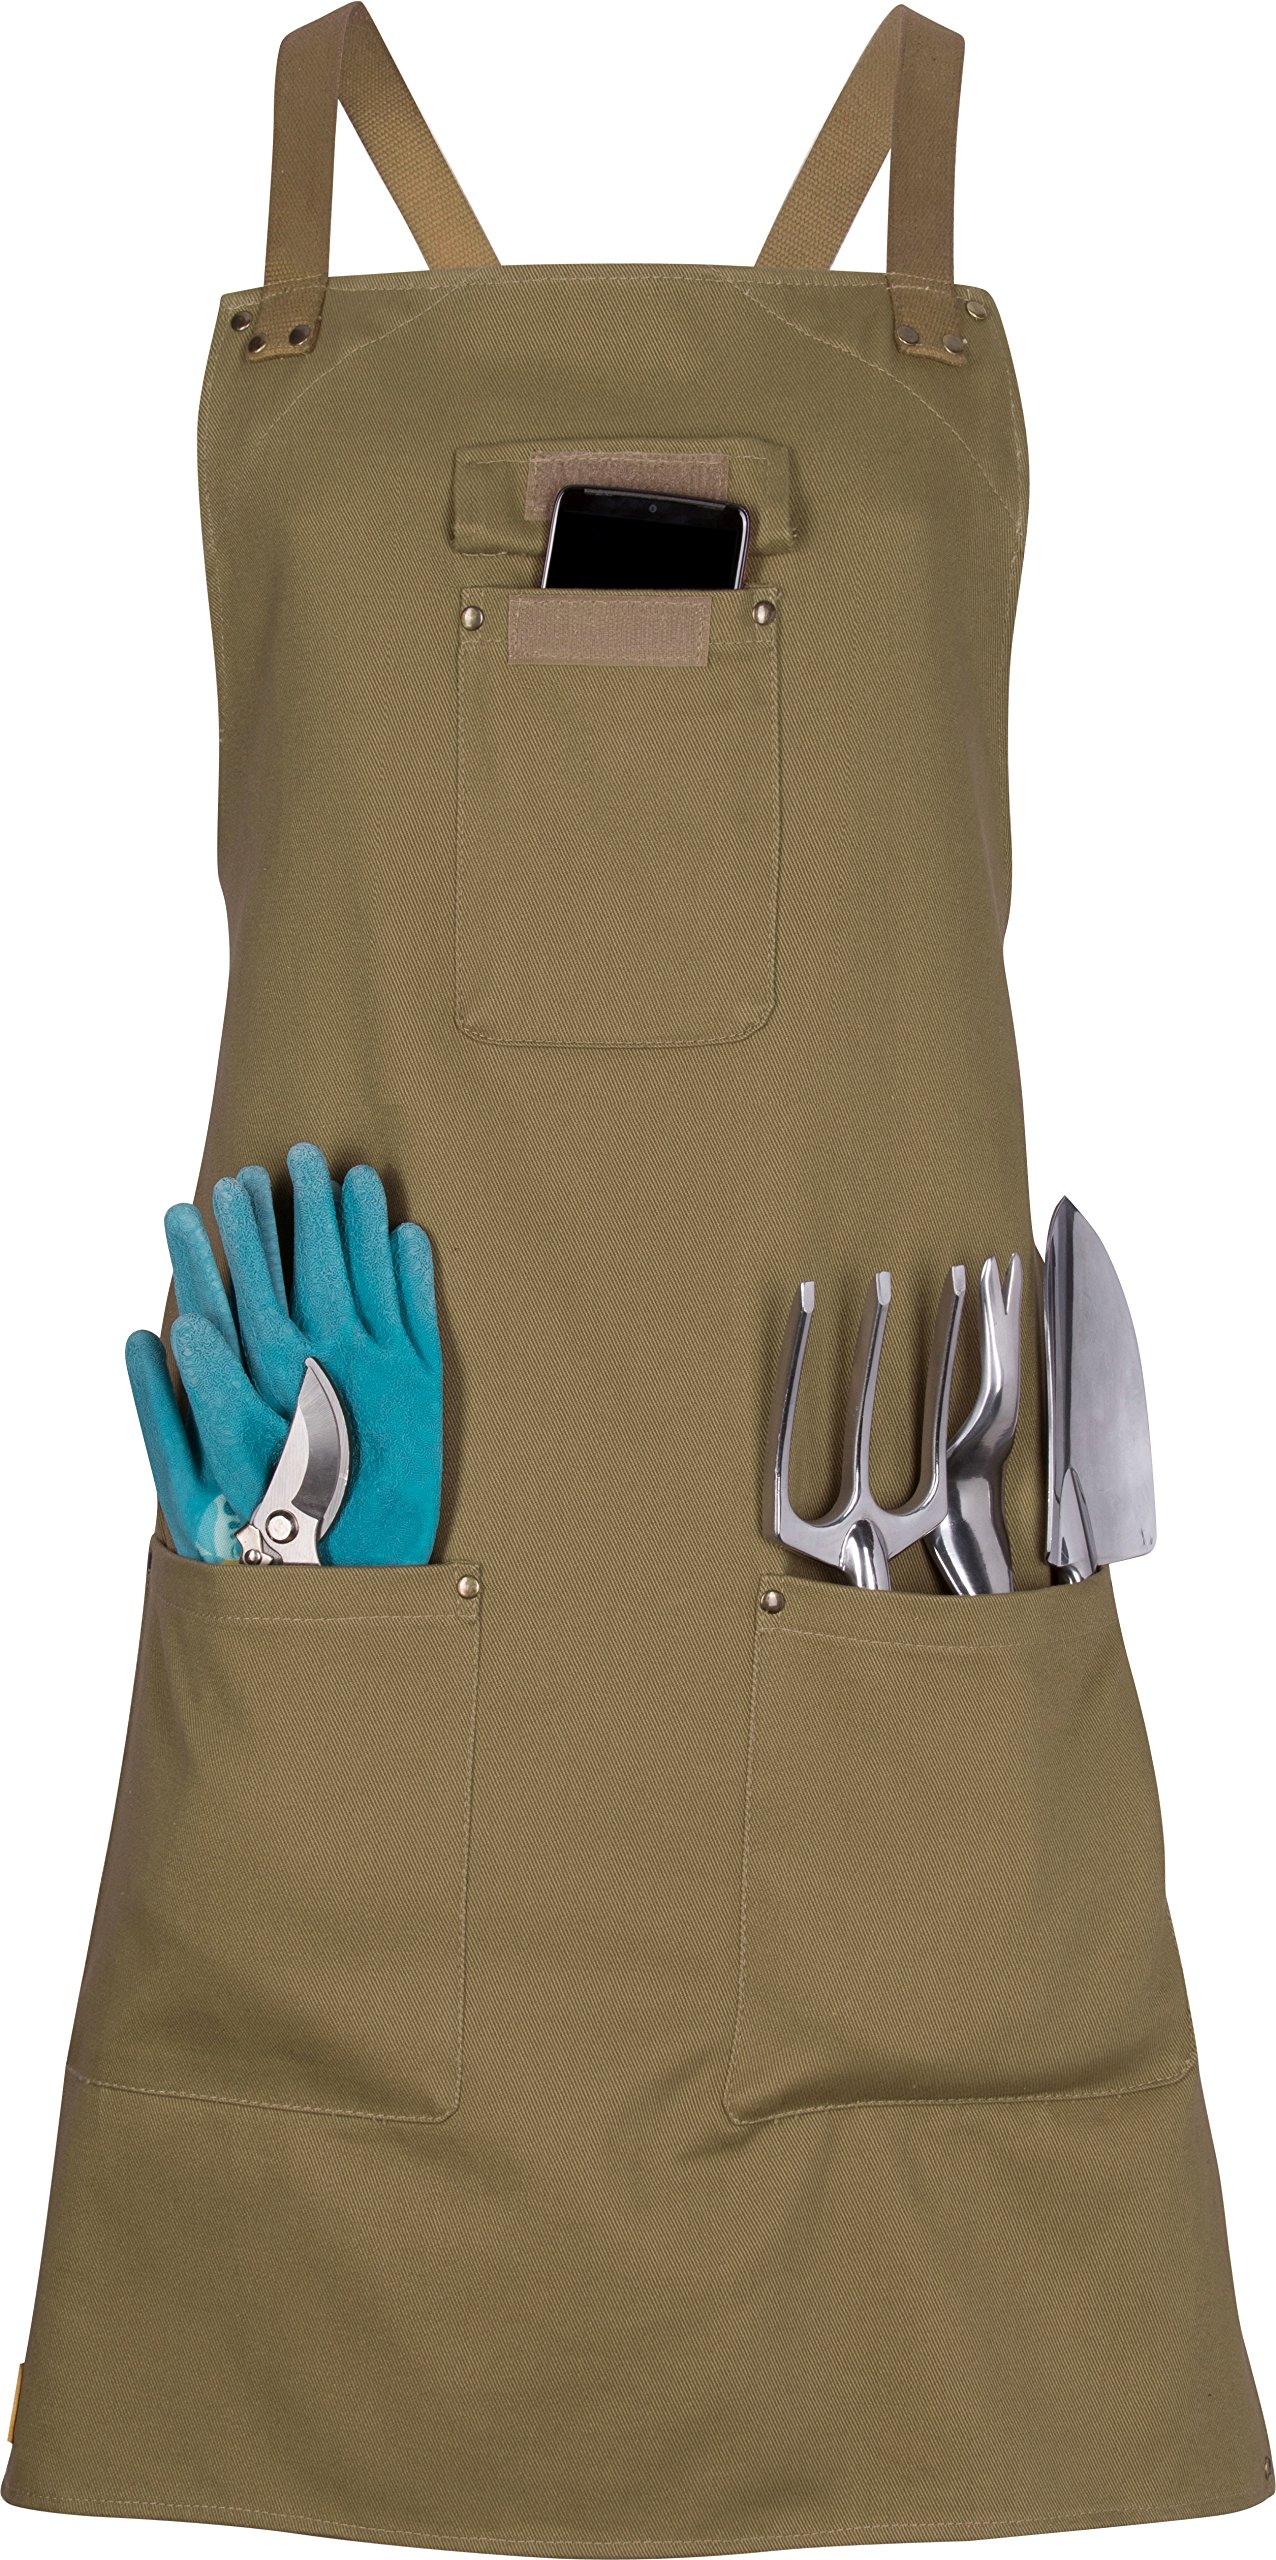 Women's Gardening Apron with Pockets - Work Apron Artist Smock - Gifts for Gardener's (Medium, Green)